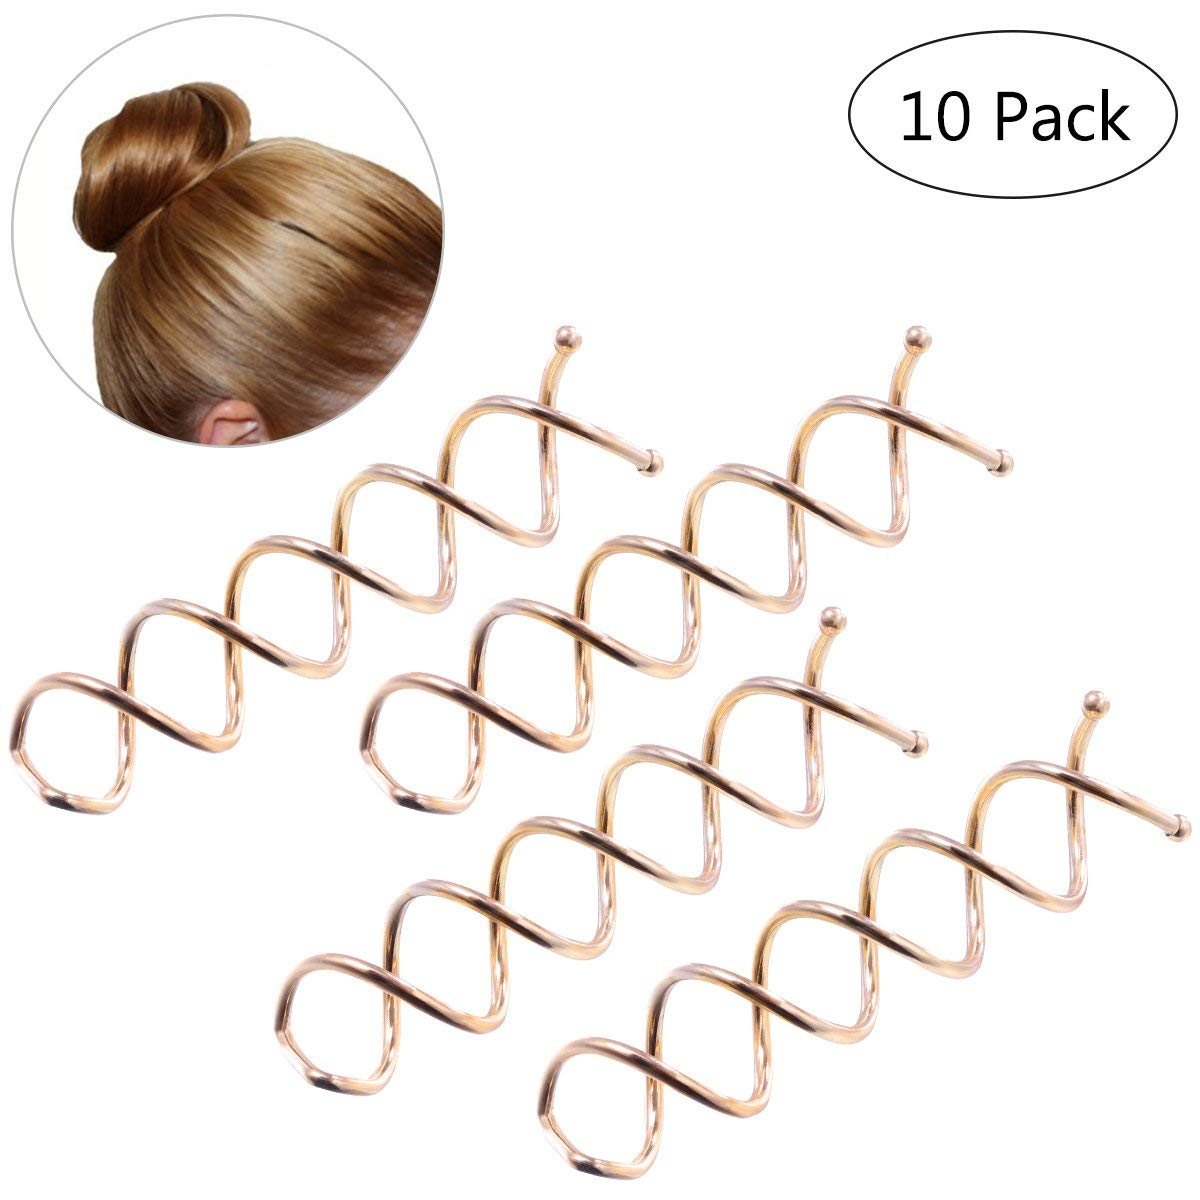 Clips Women Pcs To Medium For Hair Pin Twist Accessories Fashion Clip Stylish Spin Spiral Hair 10pcs Great Set Black Long Tools & Accessories